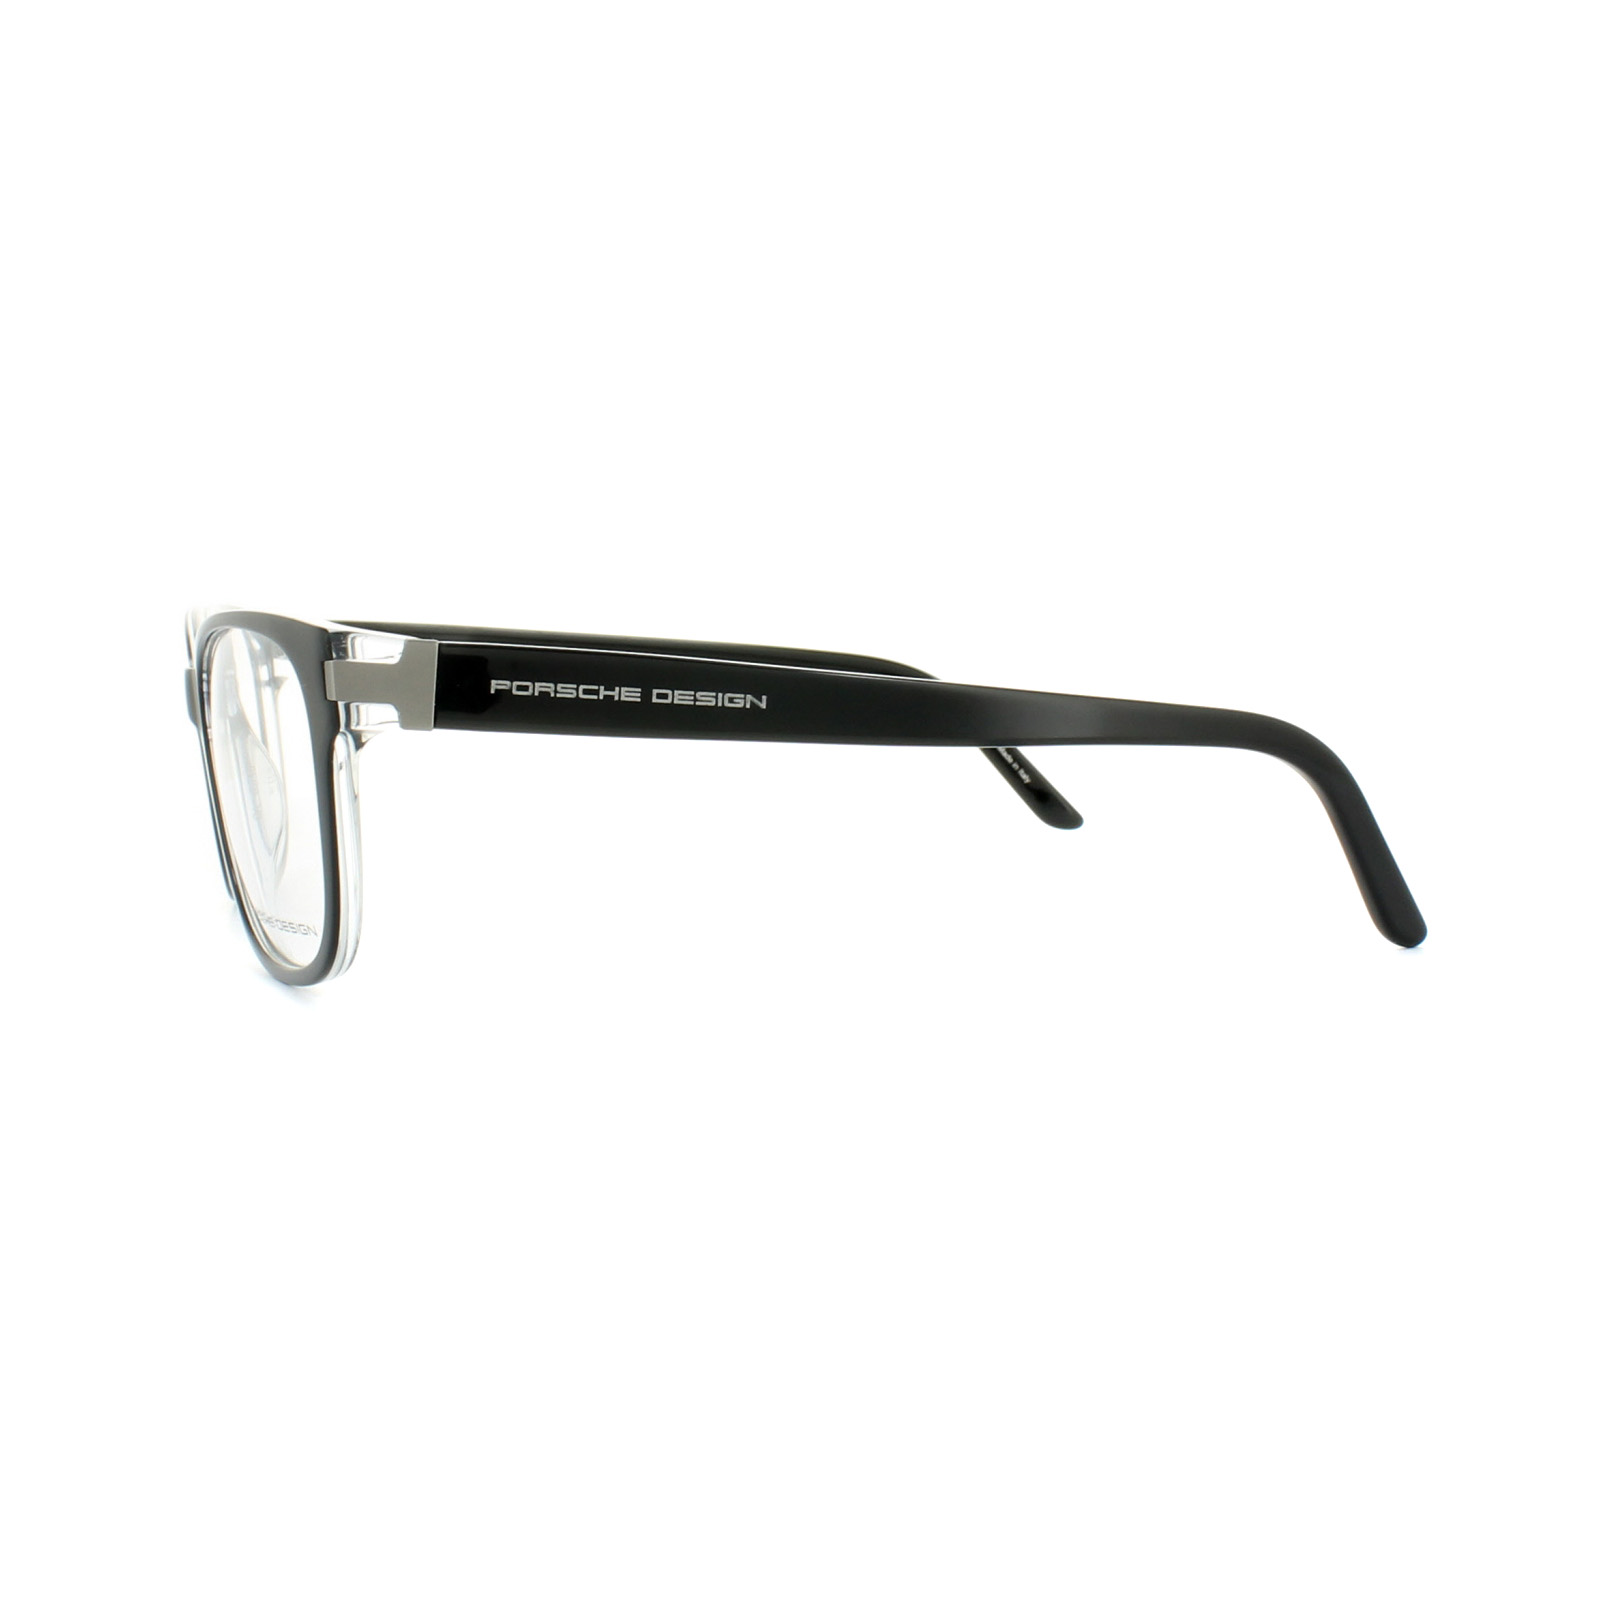 Porsche Design Glasses Frame : Cheap Porsche Design P8250 Glasses Frames - Discounted ...